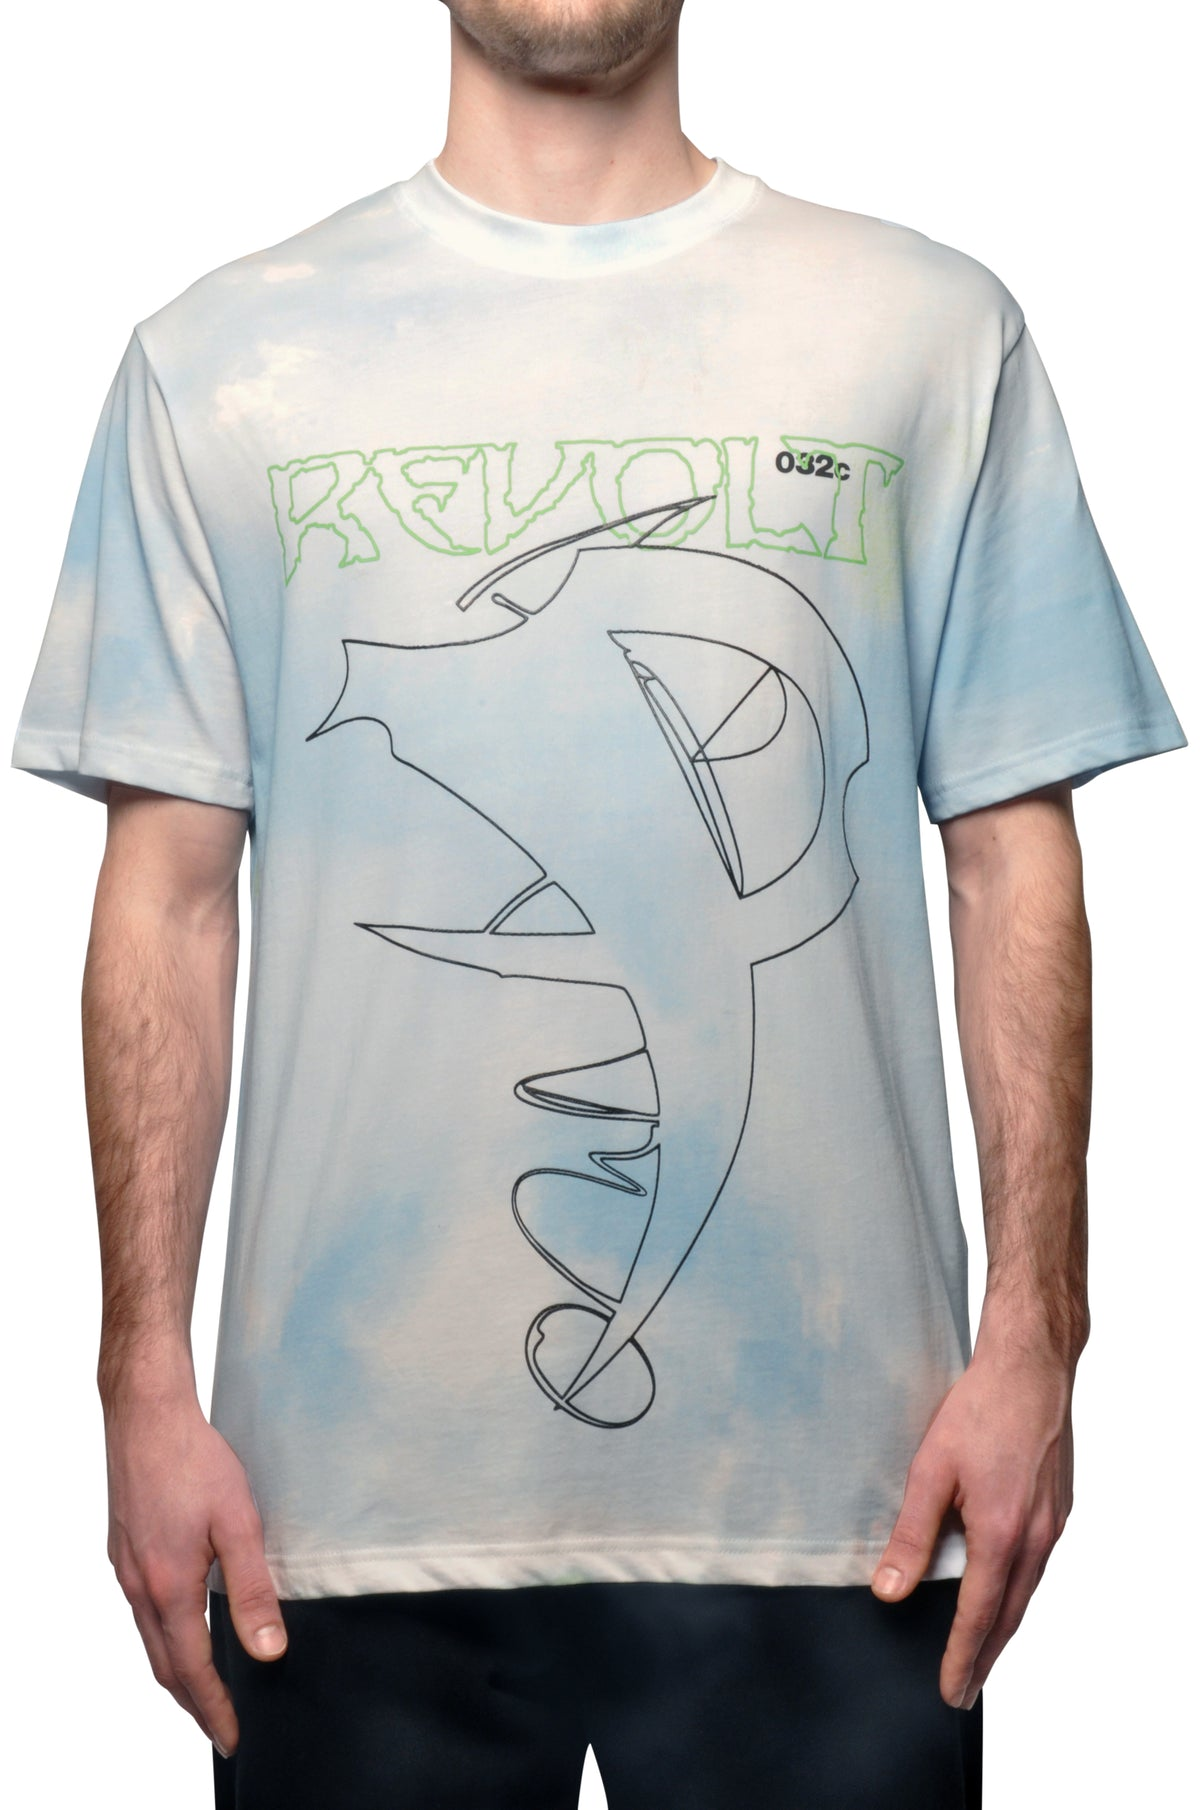 032c COSMIC WORKSHOP 'Revolt' T-Shirt Powder Blue - 032c